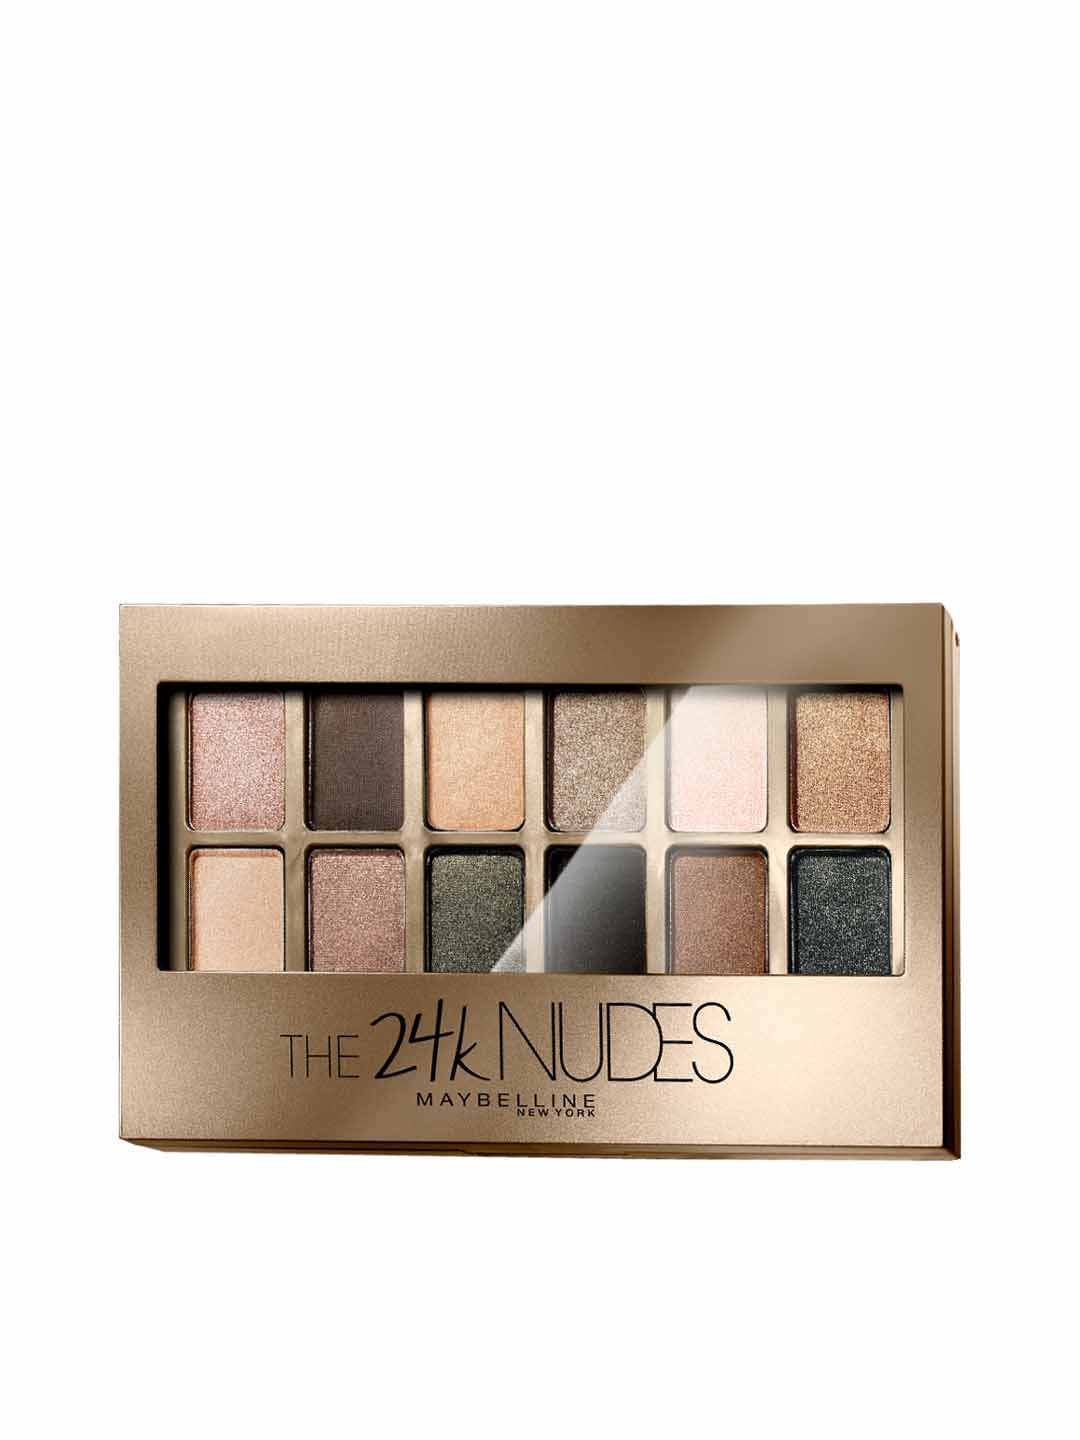 Maybelline The 24k Gold Nudes Palette 9 g Price in India